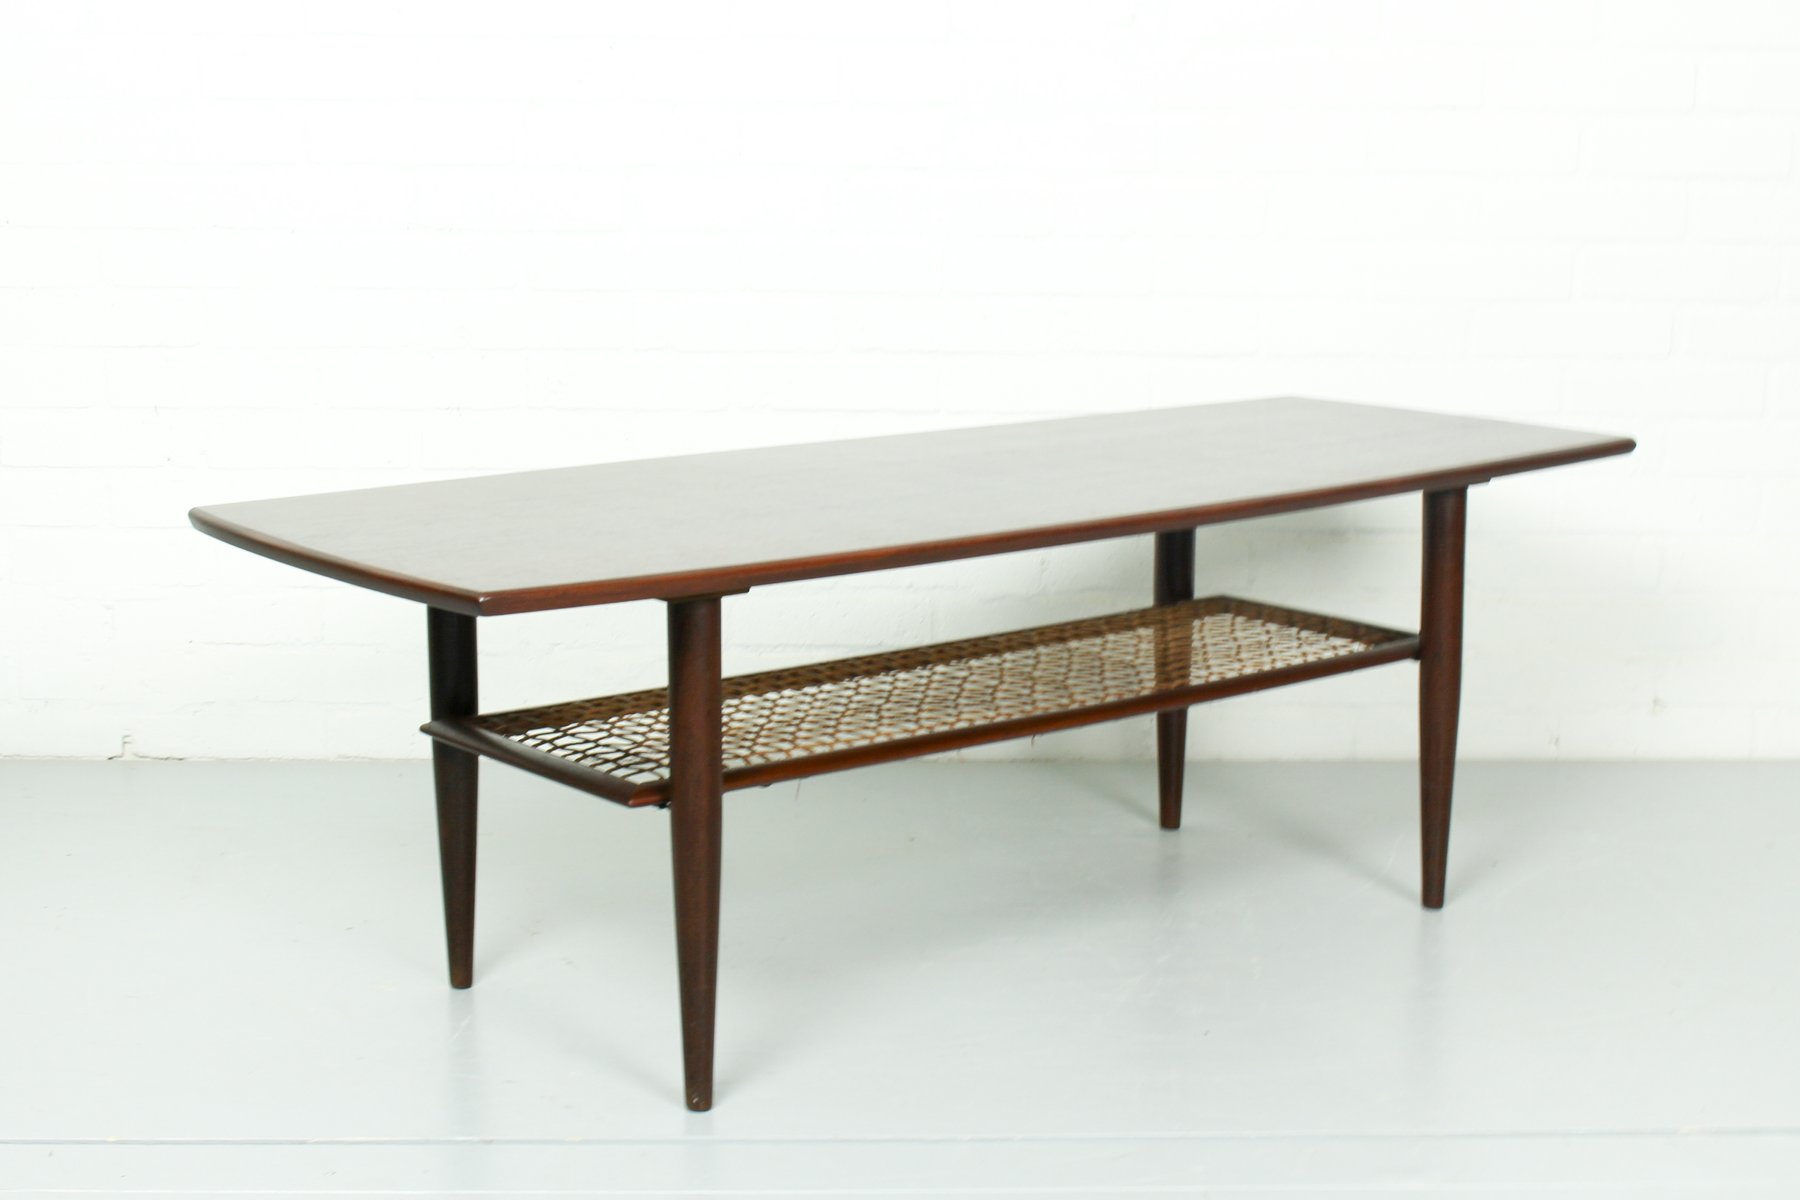 Vintage Teak Coffee Table with a Rattan Magazine Rack for sale at